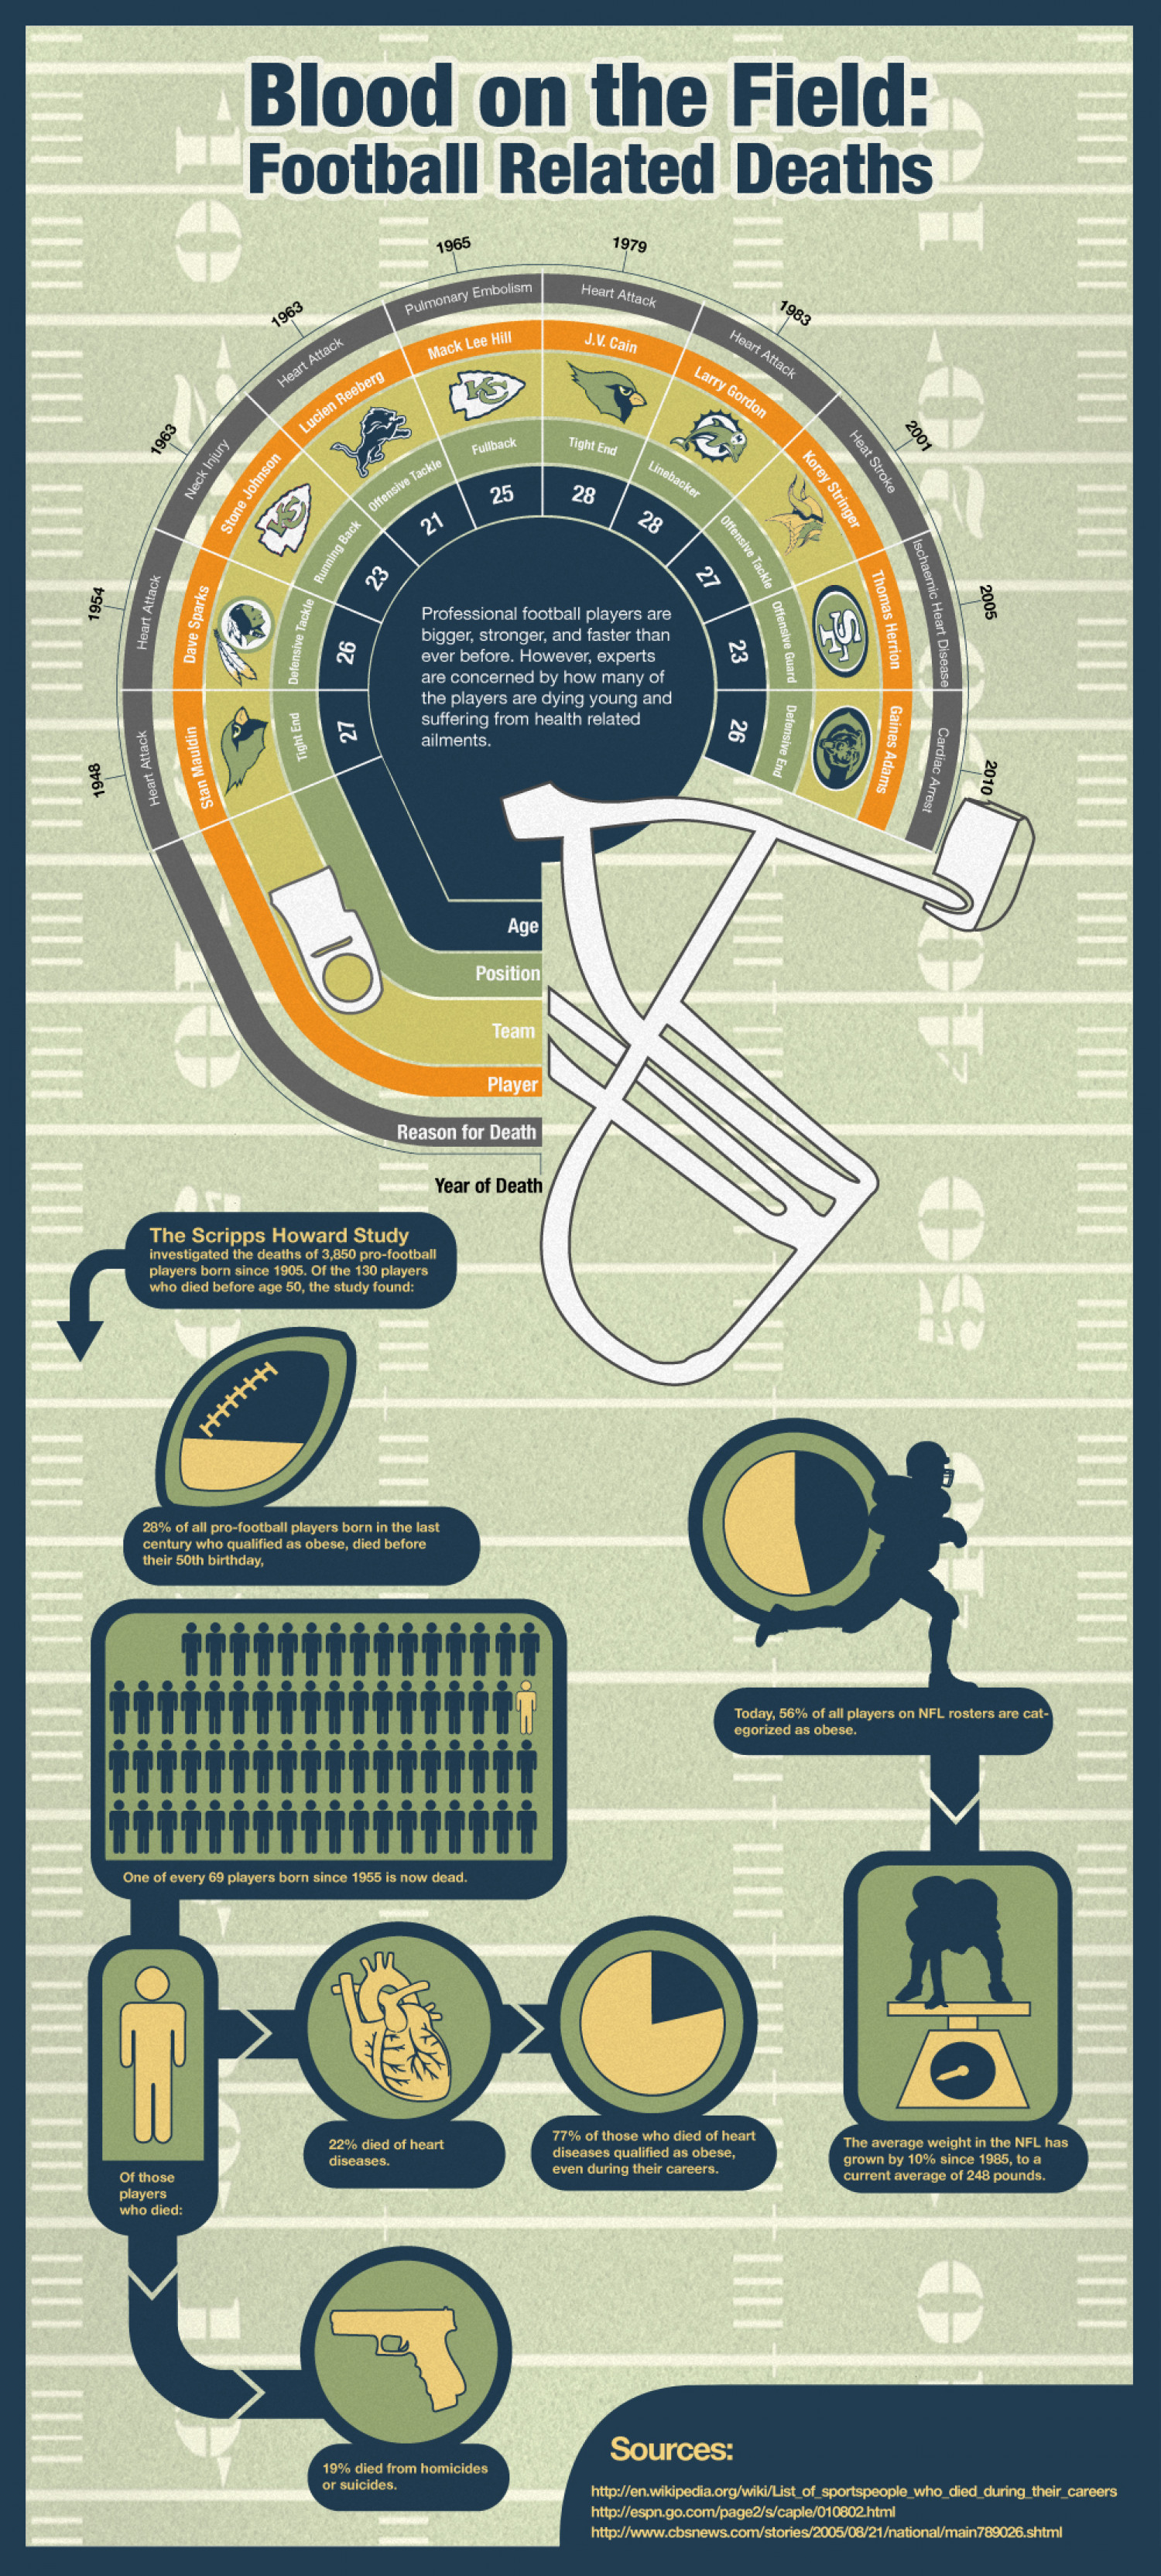 Blood on the Field: Football Related Deaths  Infographic